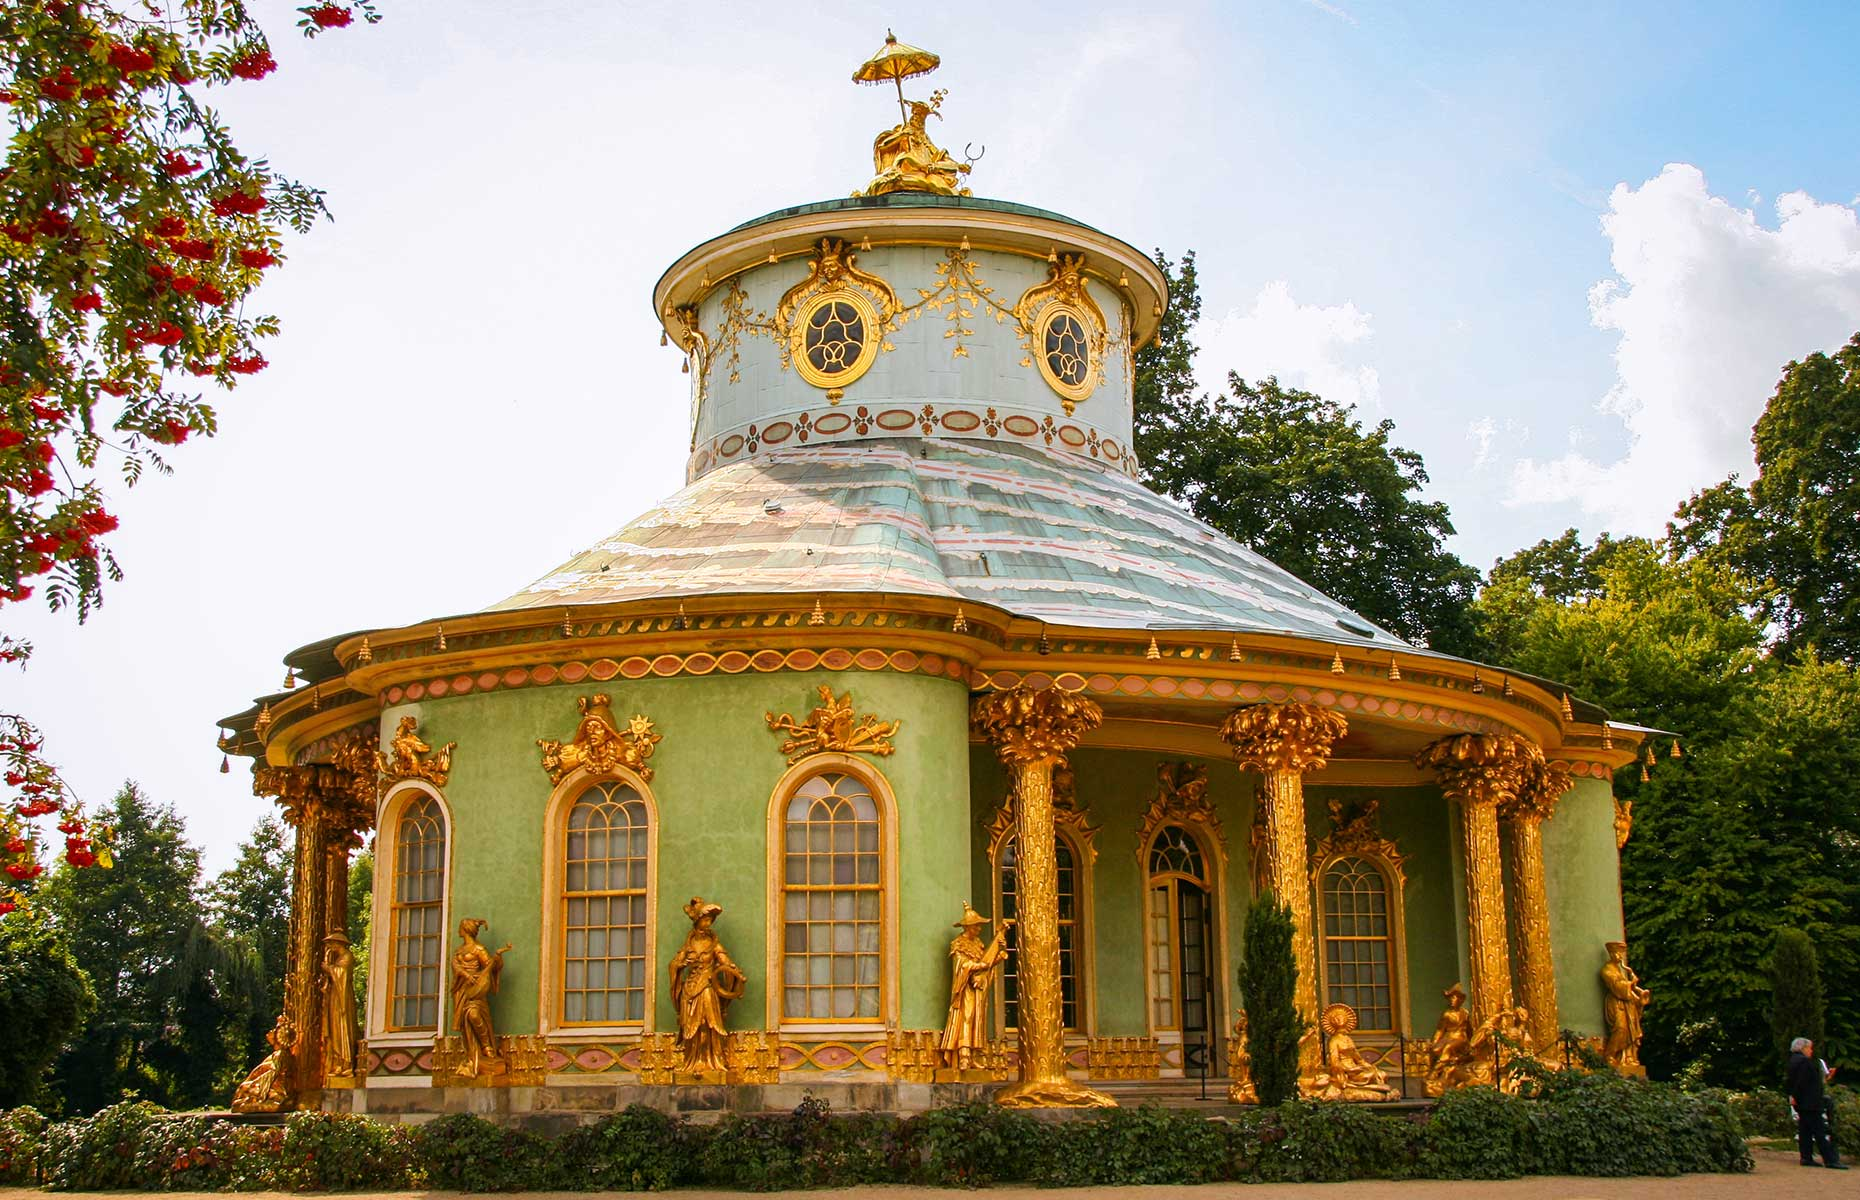 The Chinese Teahouse at the Palace on Sanssouci in Potsdam